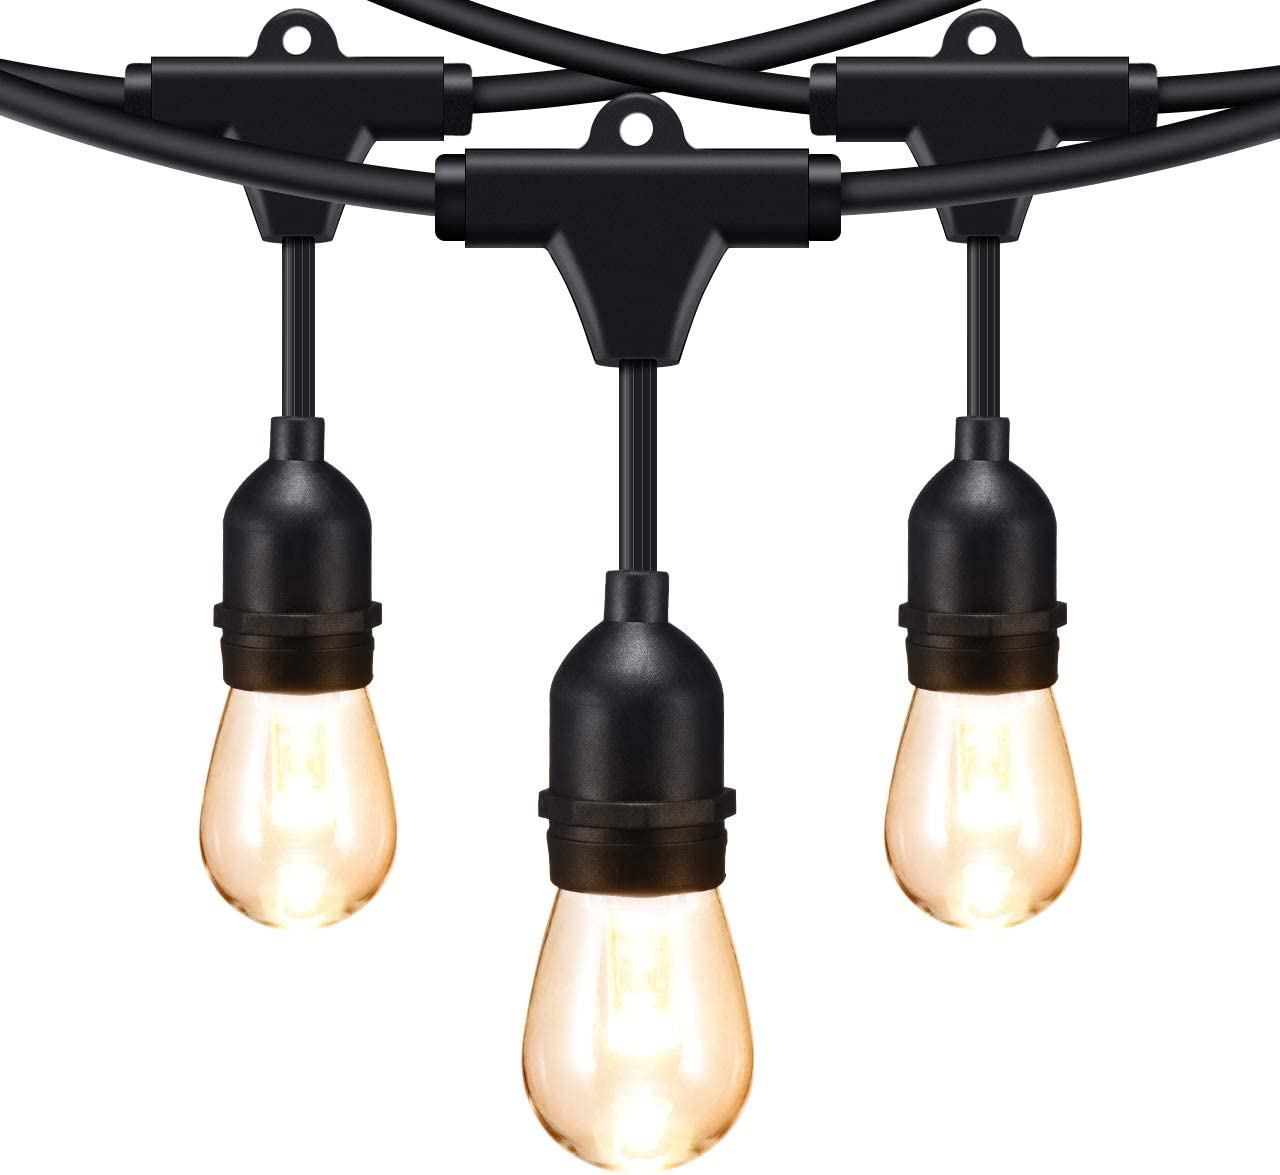 Mpow 2-Pack 49ft LED String Lights, 15 x E26 Hanging Sockets, Waterproof Dimmable 0.9W Vintage Bulbs 2 Spare , Connectable Edison Outdoor String Lights Create Cafe Ambience for Patio Backyard